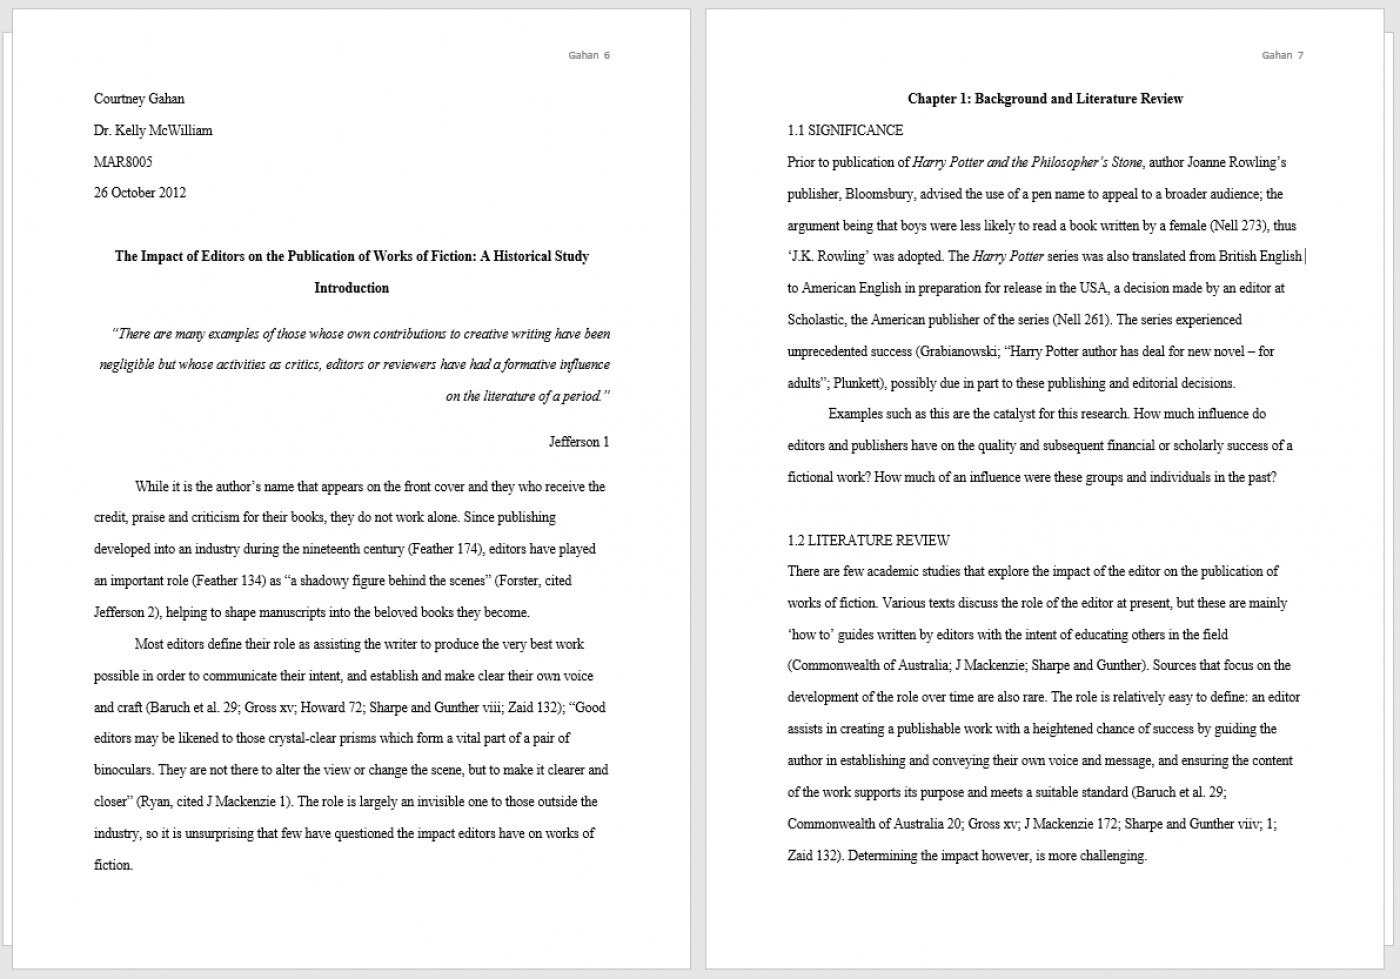 011 Thesis Two Pages Example Full What Is Mla Format Fors Unique For Essays Essay With Title Page 2017 1400